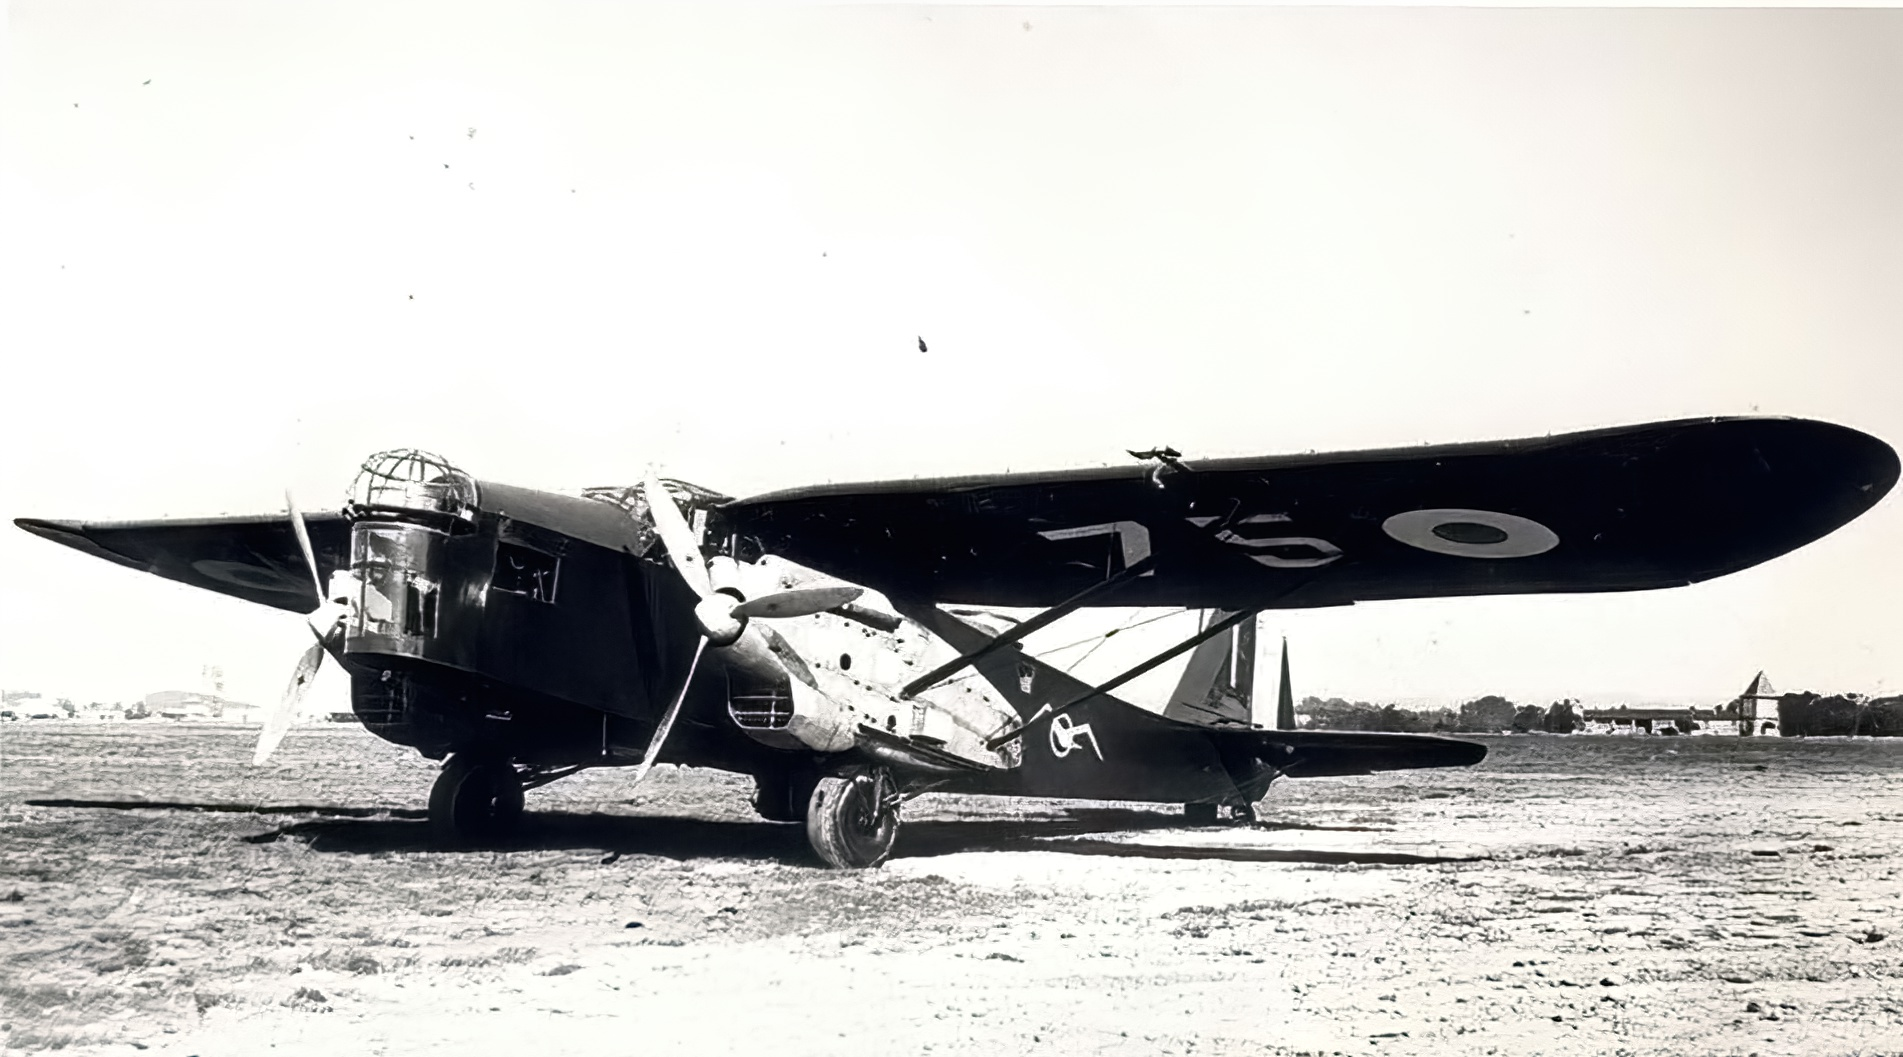 French Airforce Potez 540 at a French airbase France ebay 01